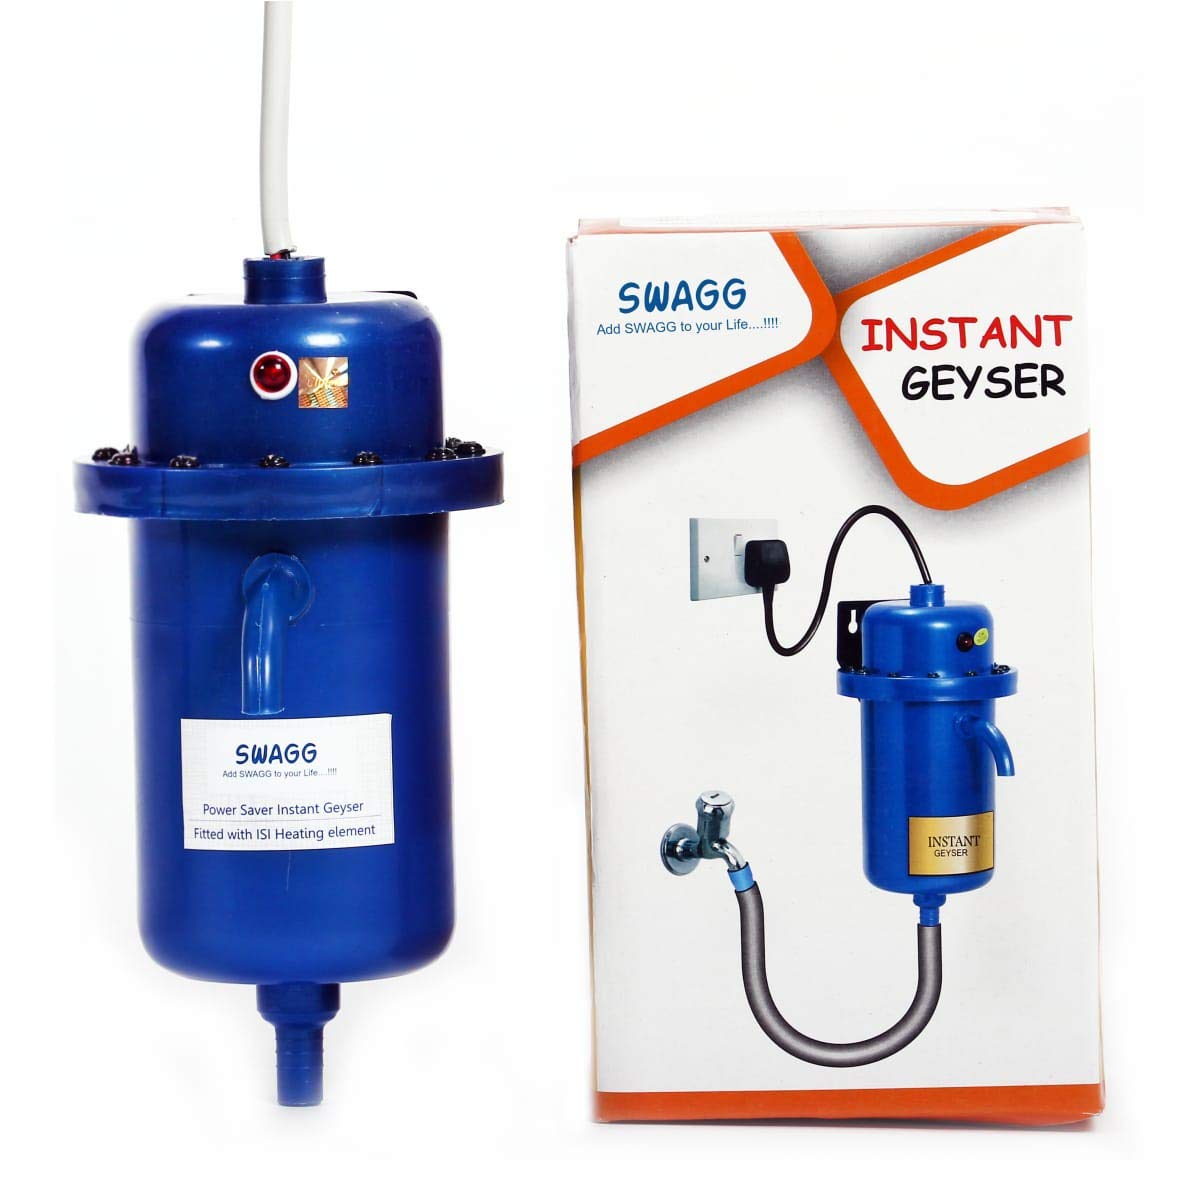 SWAGG Instant Water Gyser/Heater